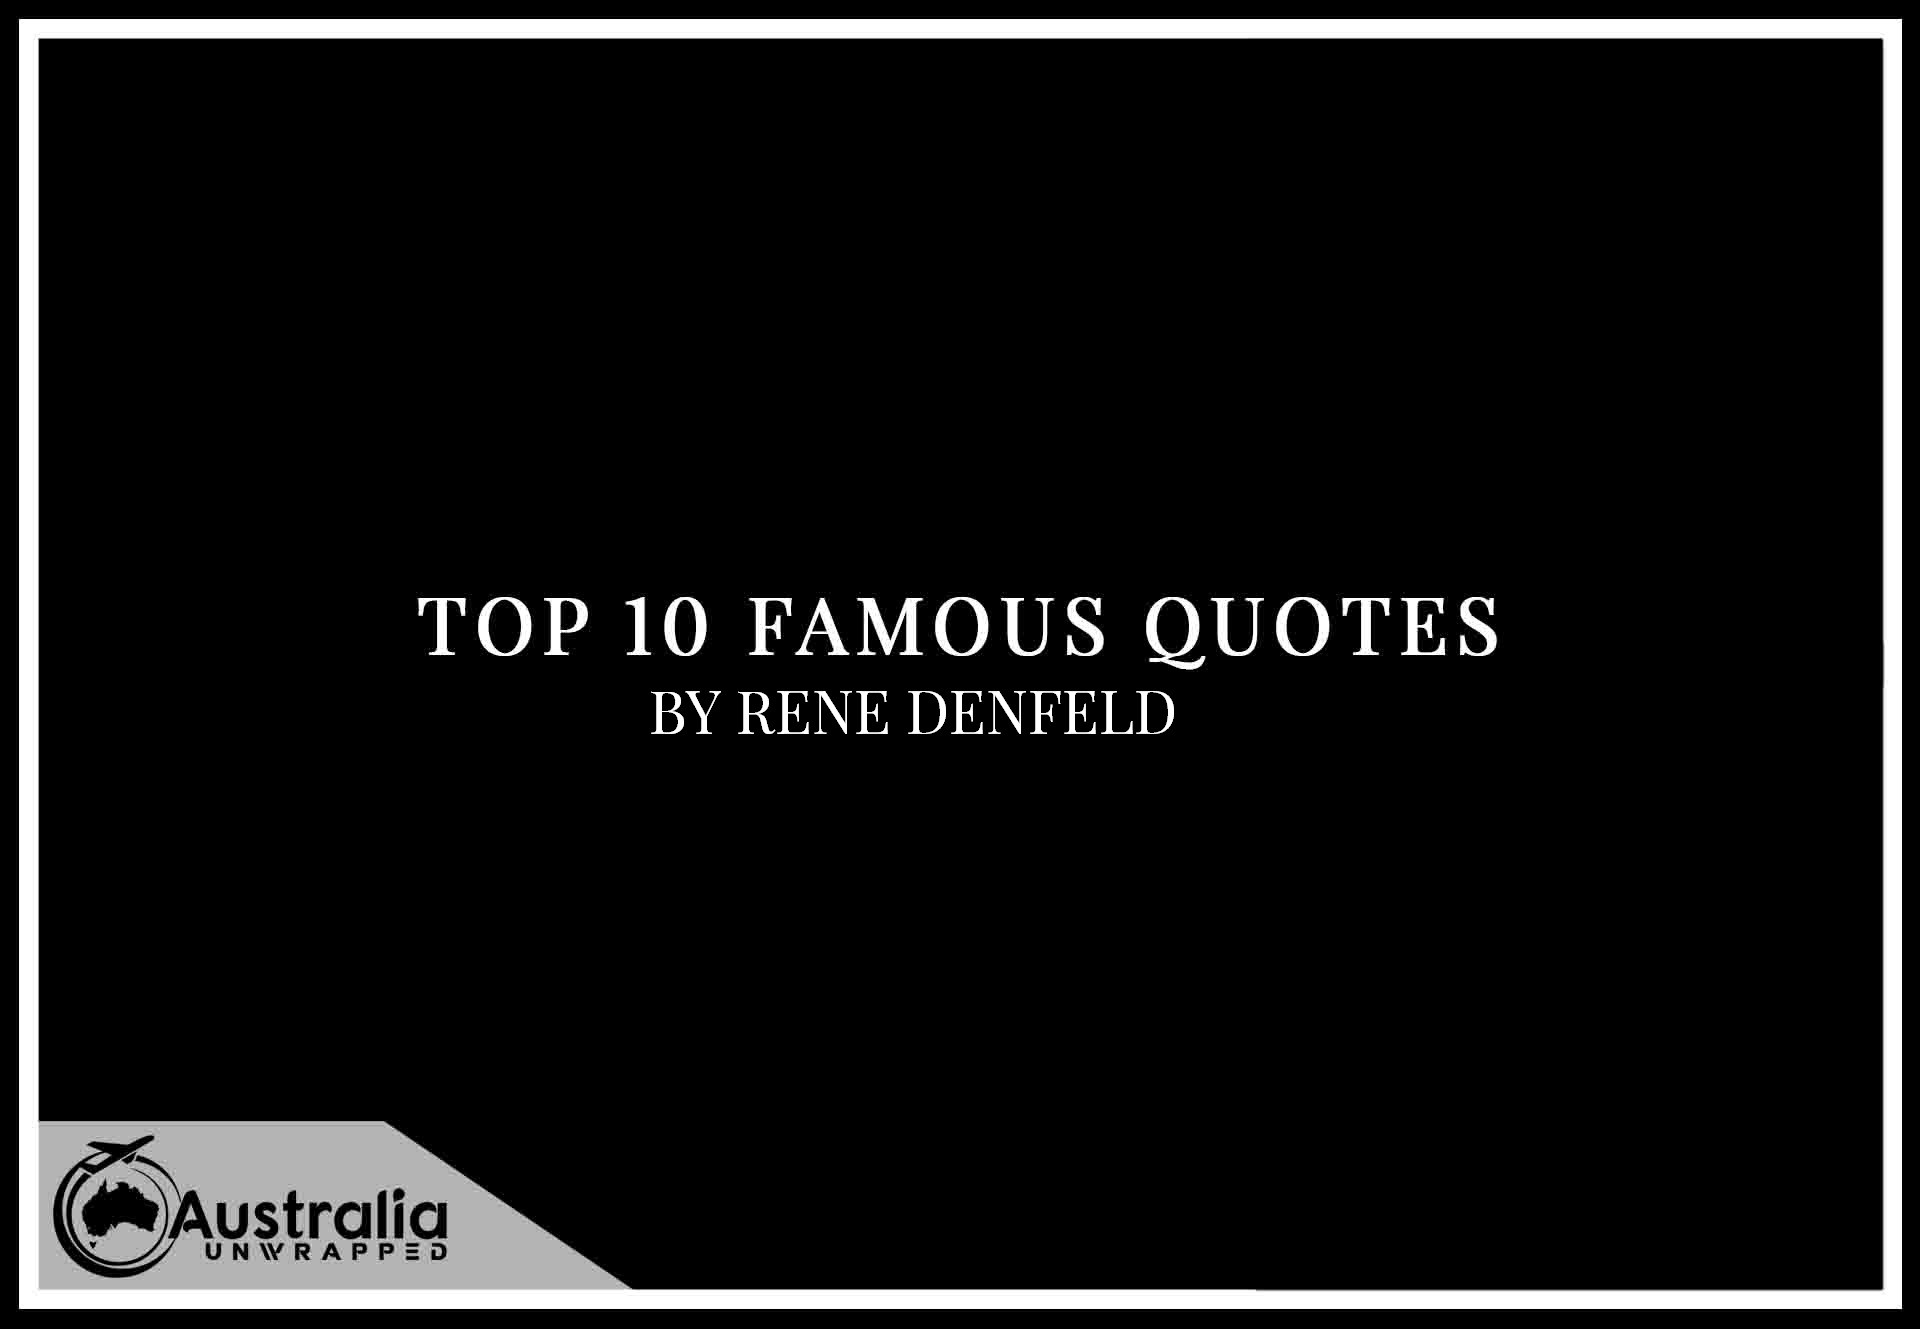 Top 10 Famous Quotes by Author Rene Denfeld